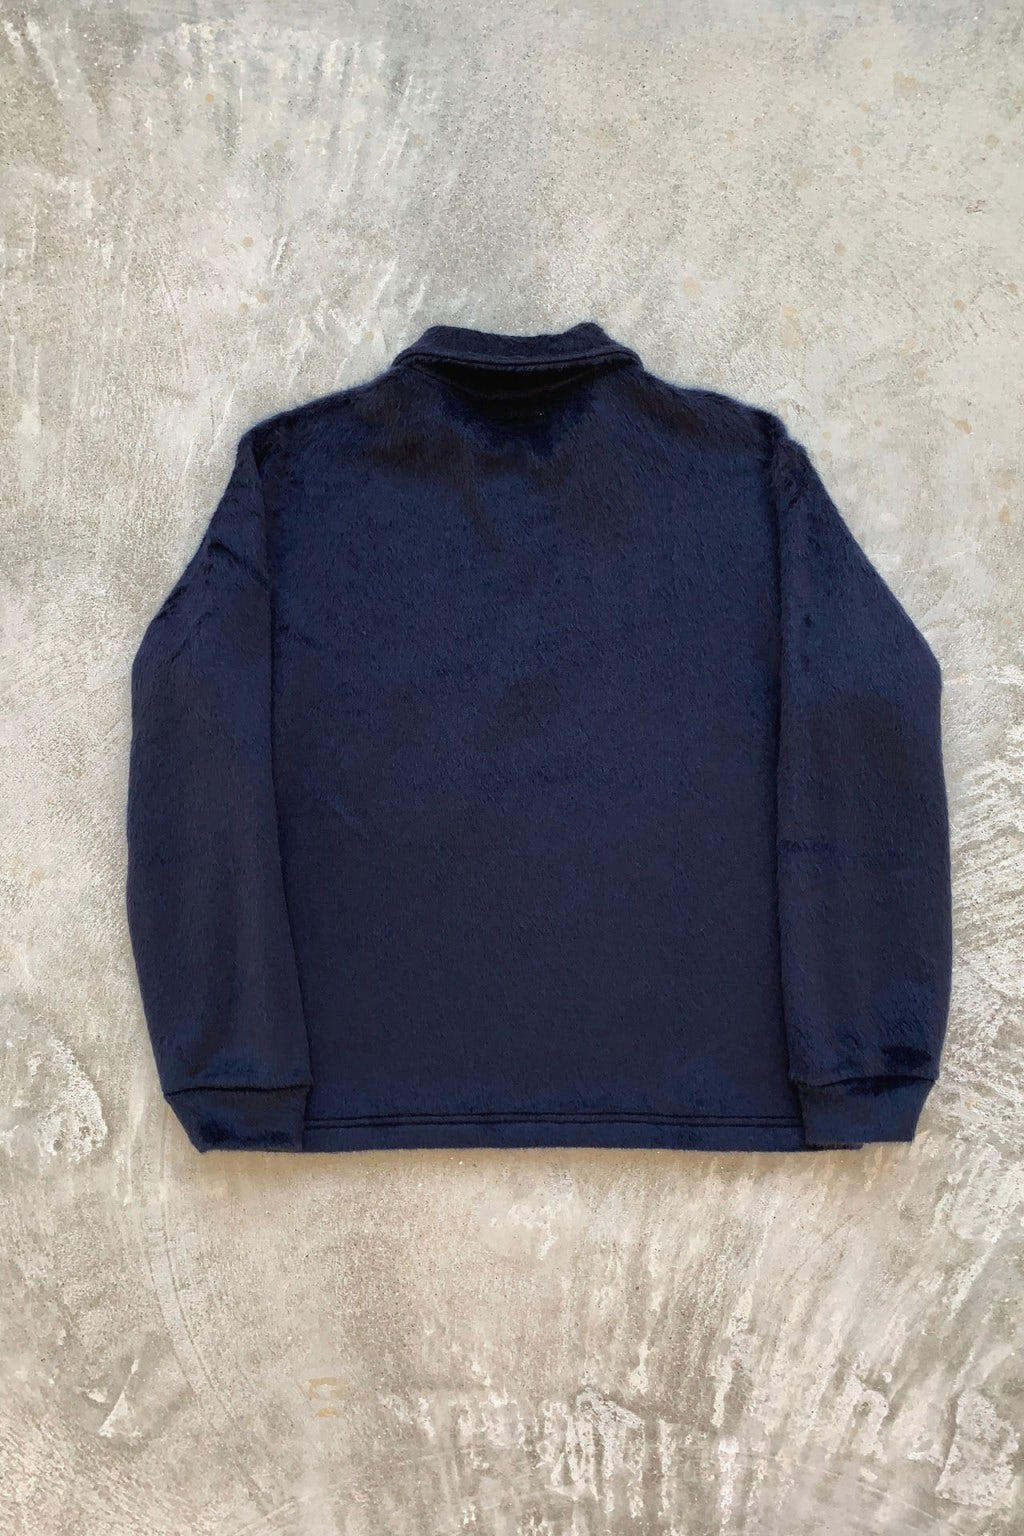 Lady White Co. Furry 1/4 Zip Navy Pullover